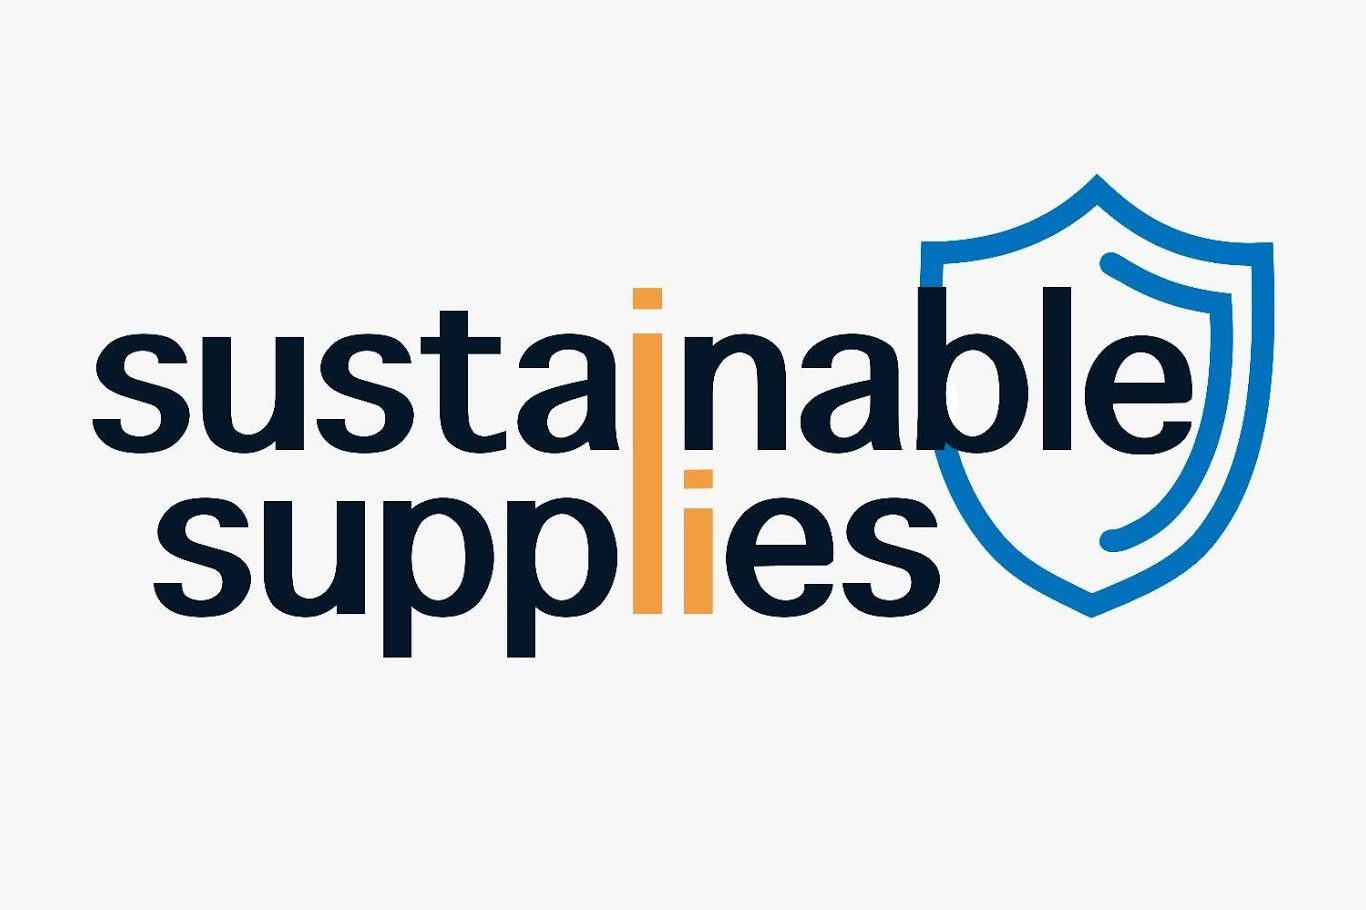 sustainable supplies